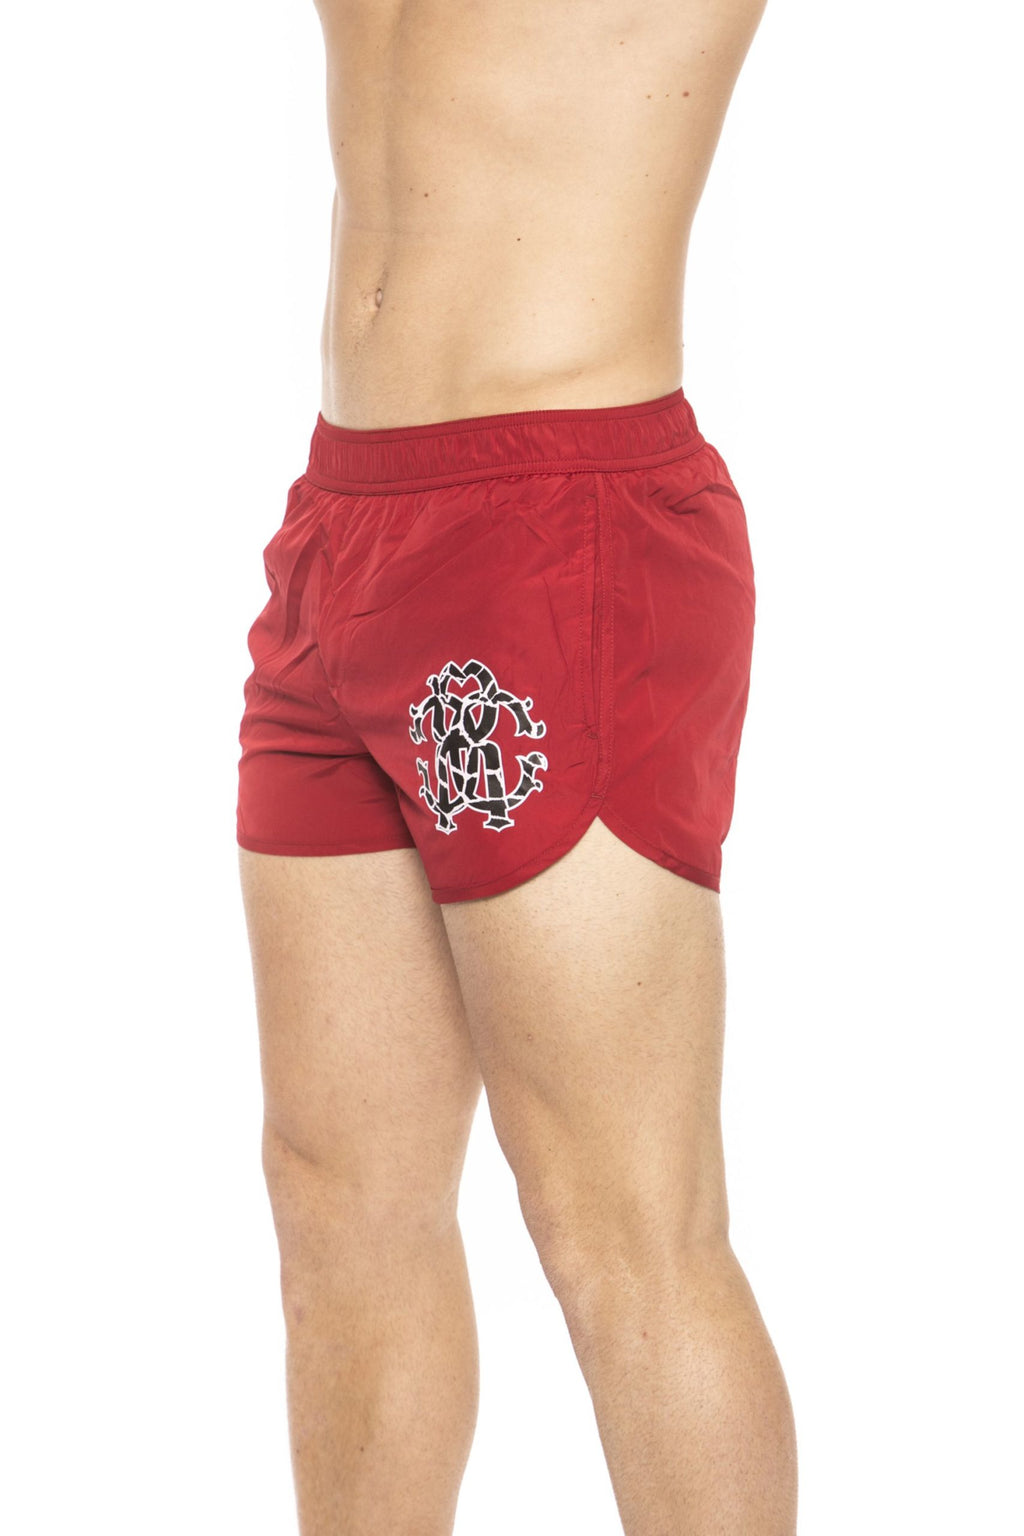 Red Short Beachwear Boxer With Pockets. Front Logo Print. Internal Net. Back Pocket.